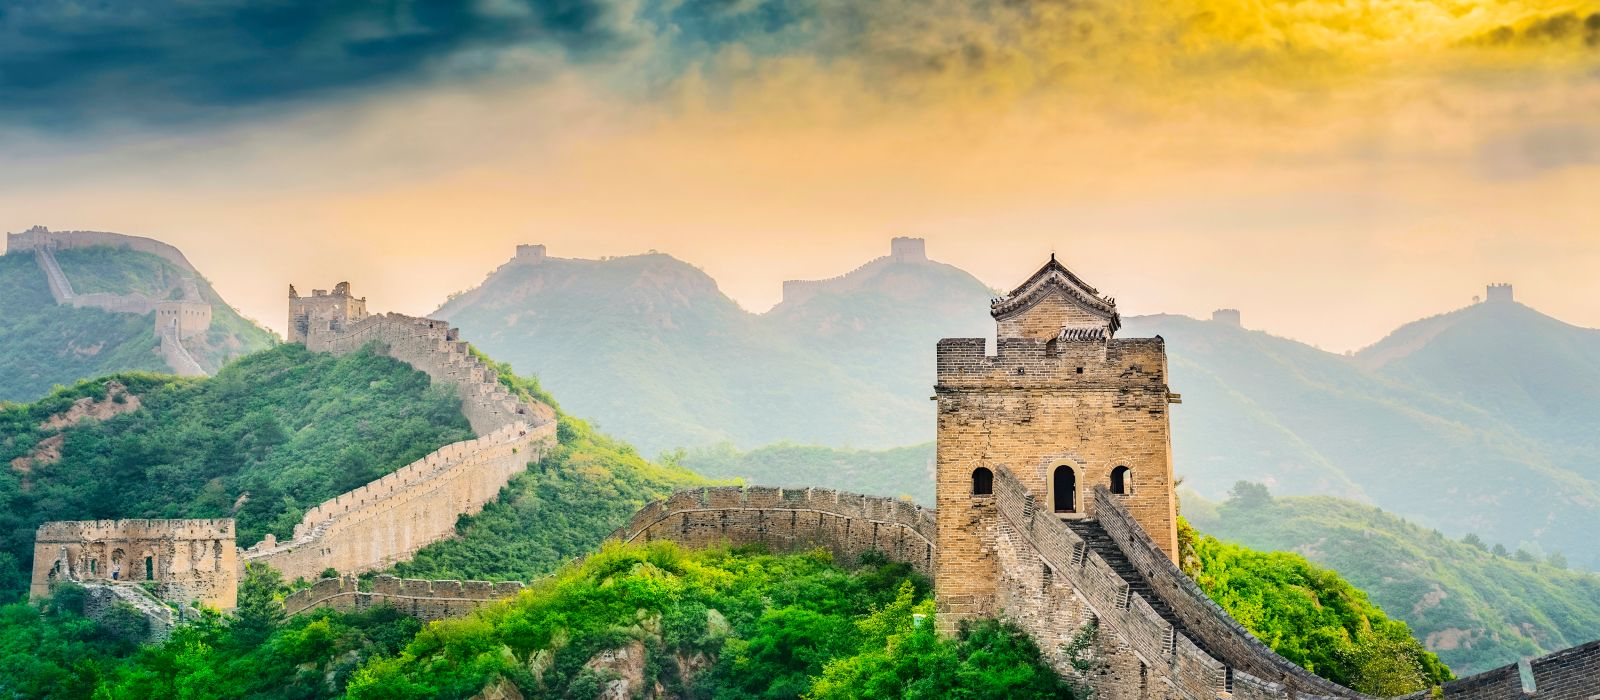 China's Imperial Cities & Legendary Landscapes Tour Trip 2